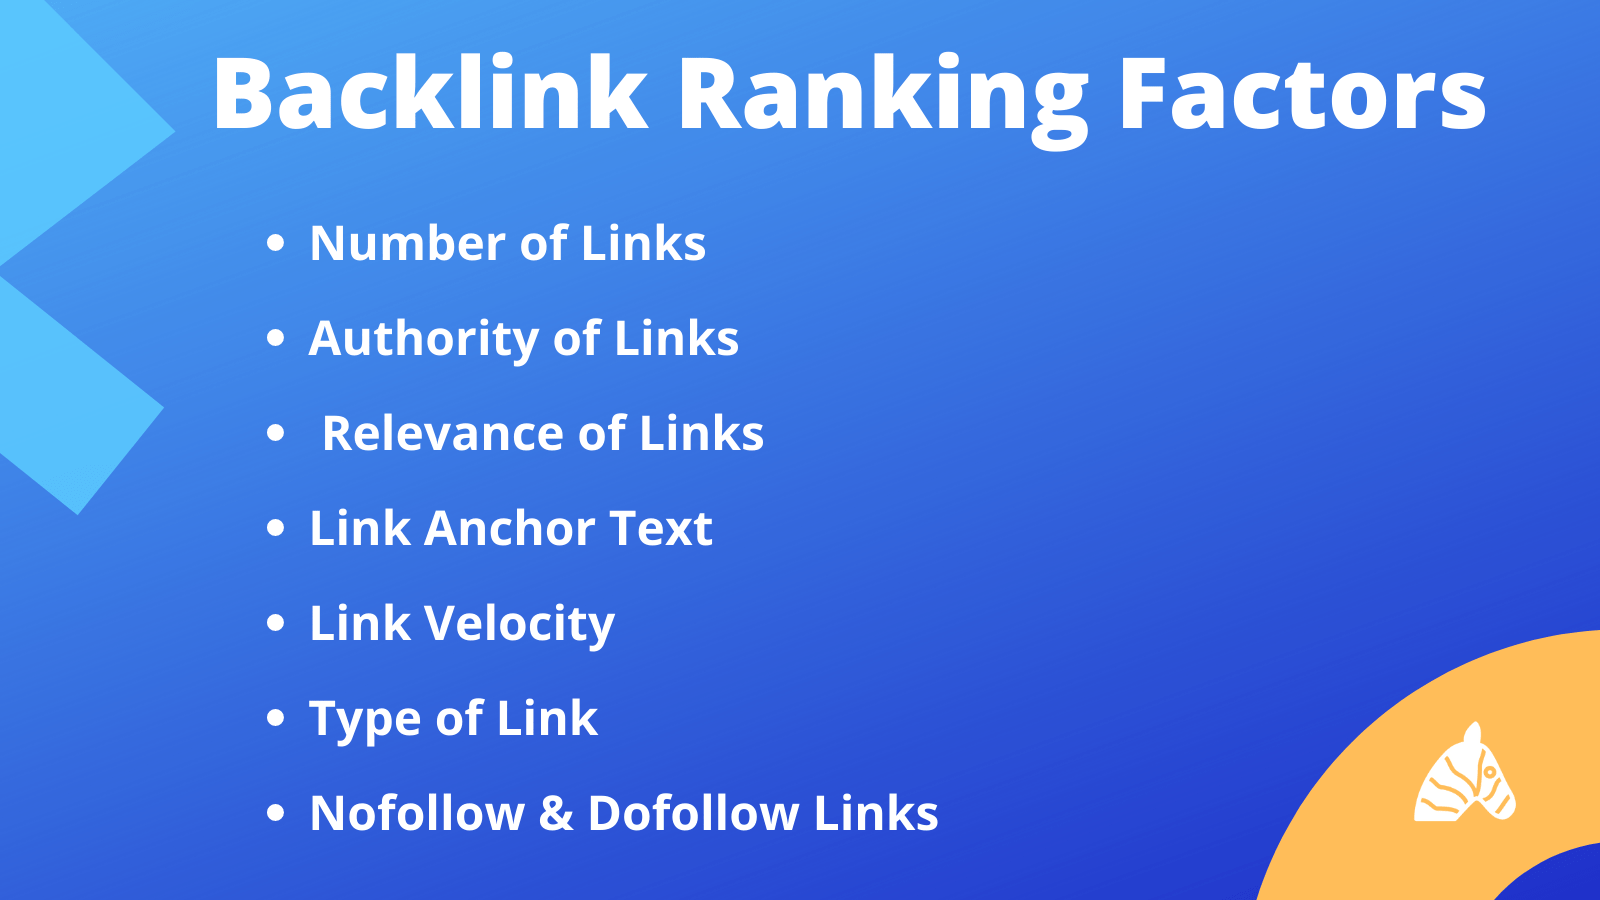 backlink ranking factors that contribute to website rankings in Google